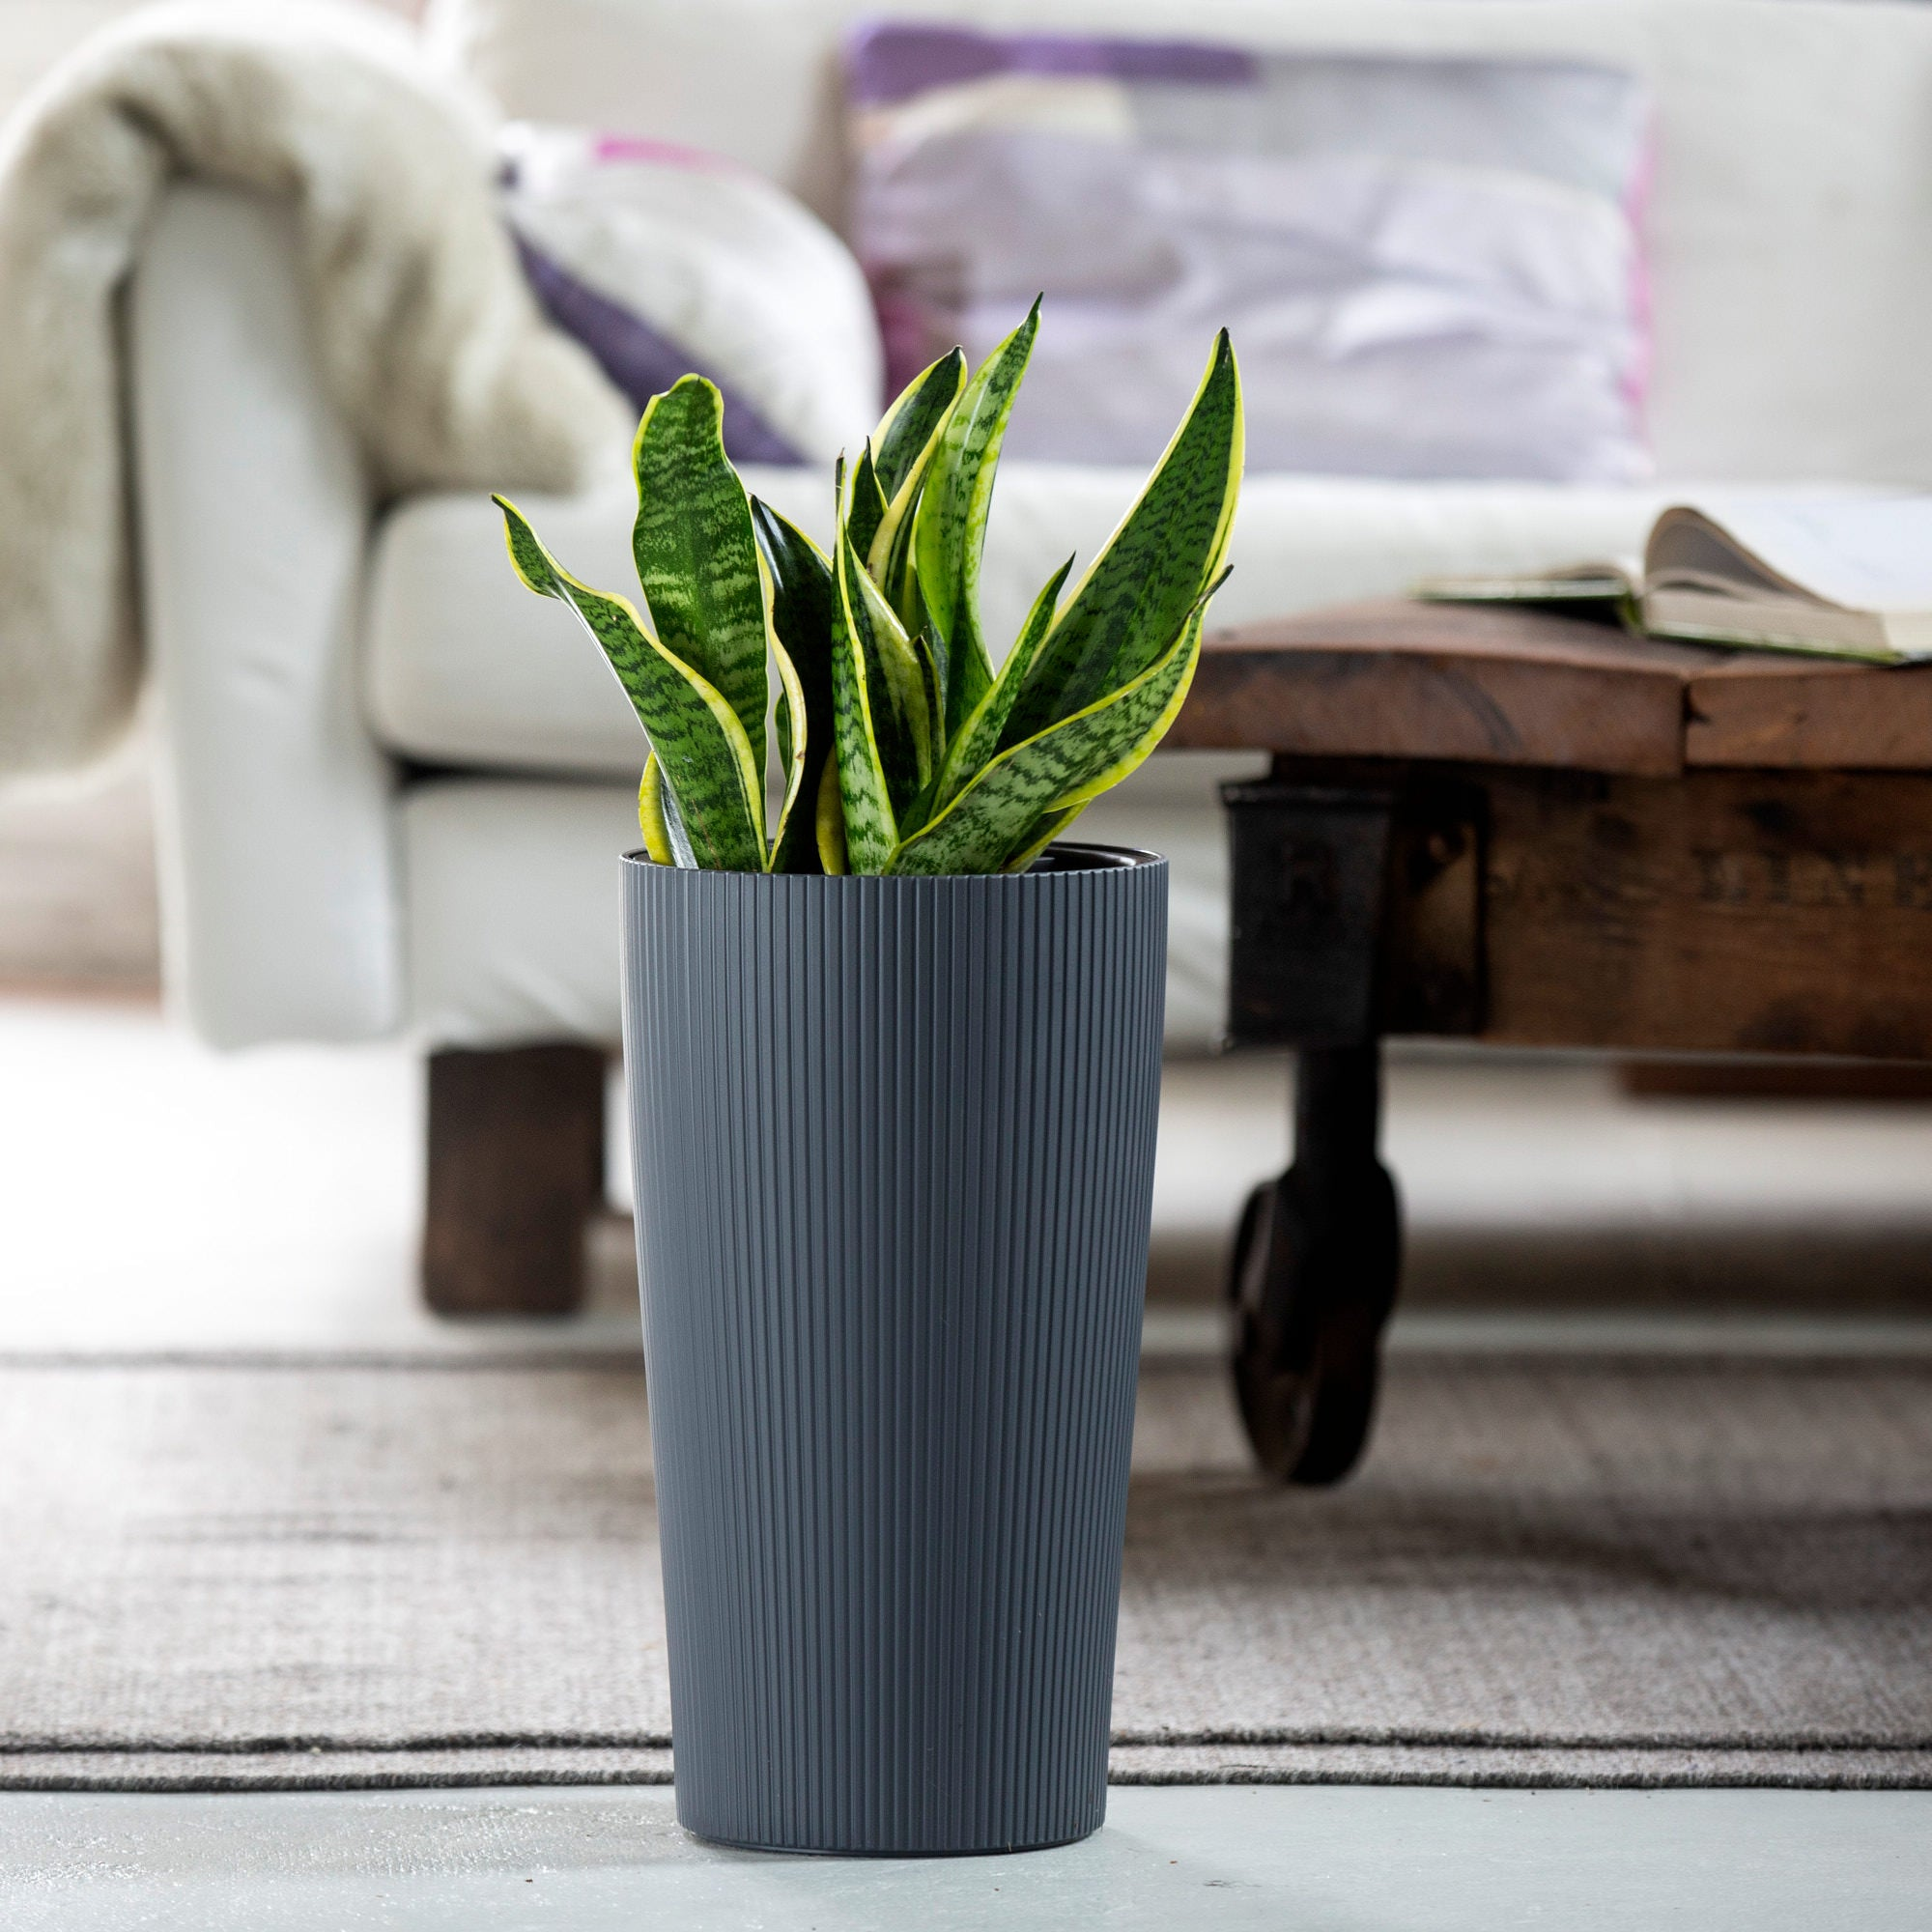 Snake plant potted in Lechuza Cilindro slate self-watering planter - My City Plants